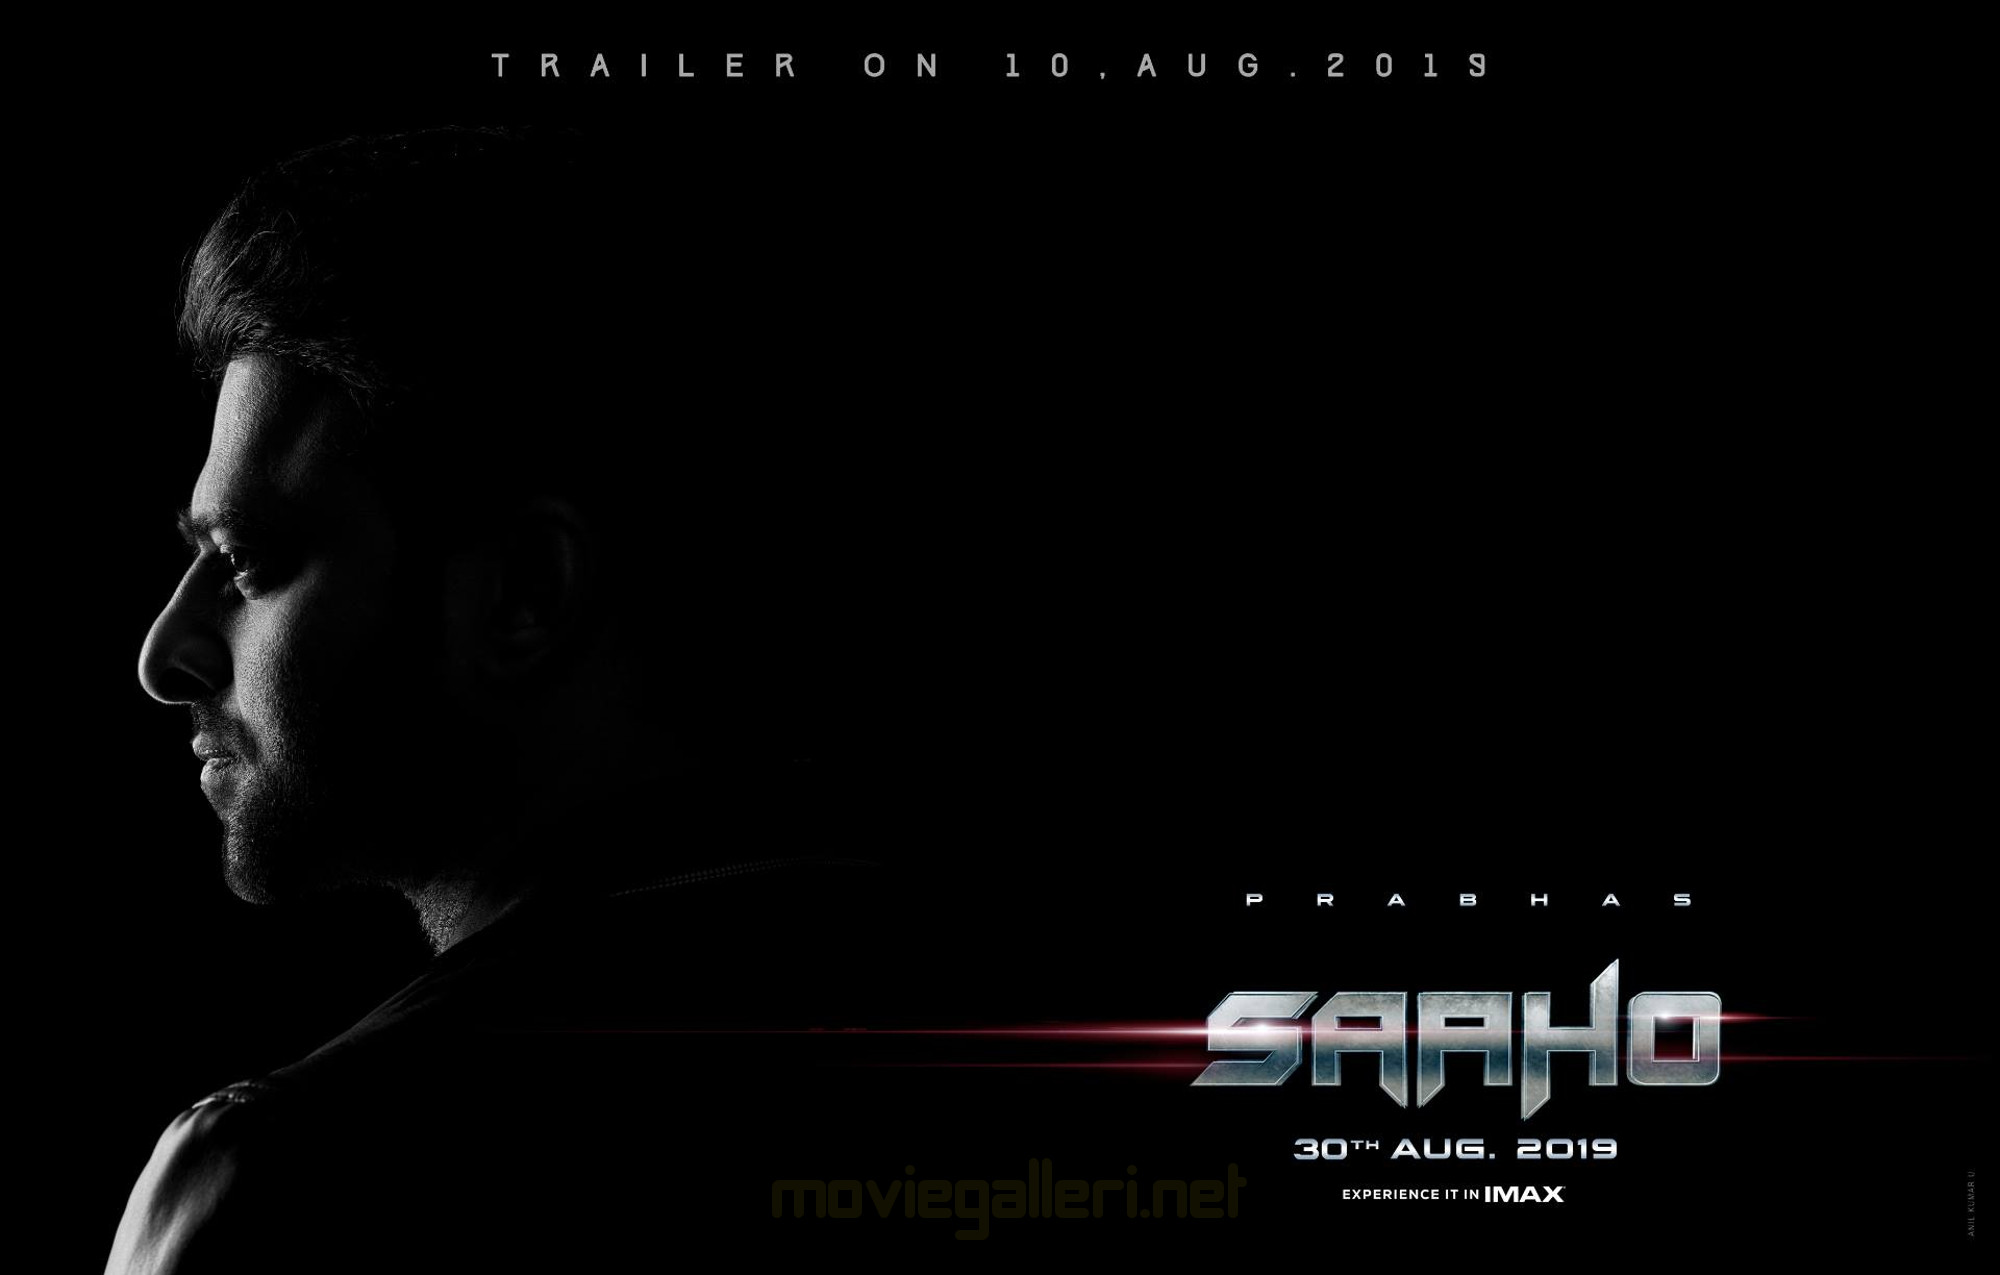 Prabhas Saaho Movie Trailer Releasing on 10th August Poster HD